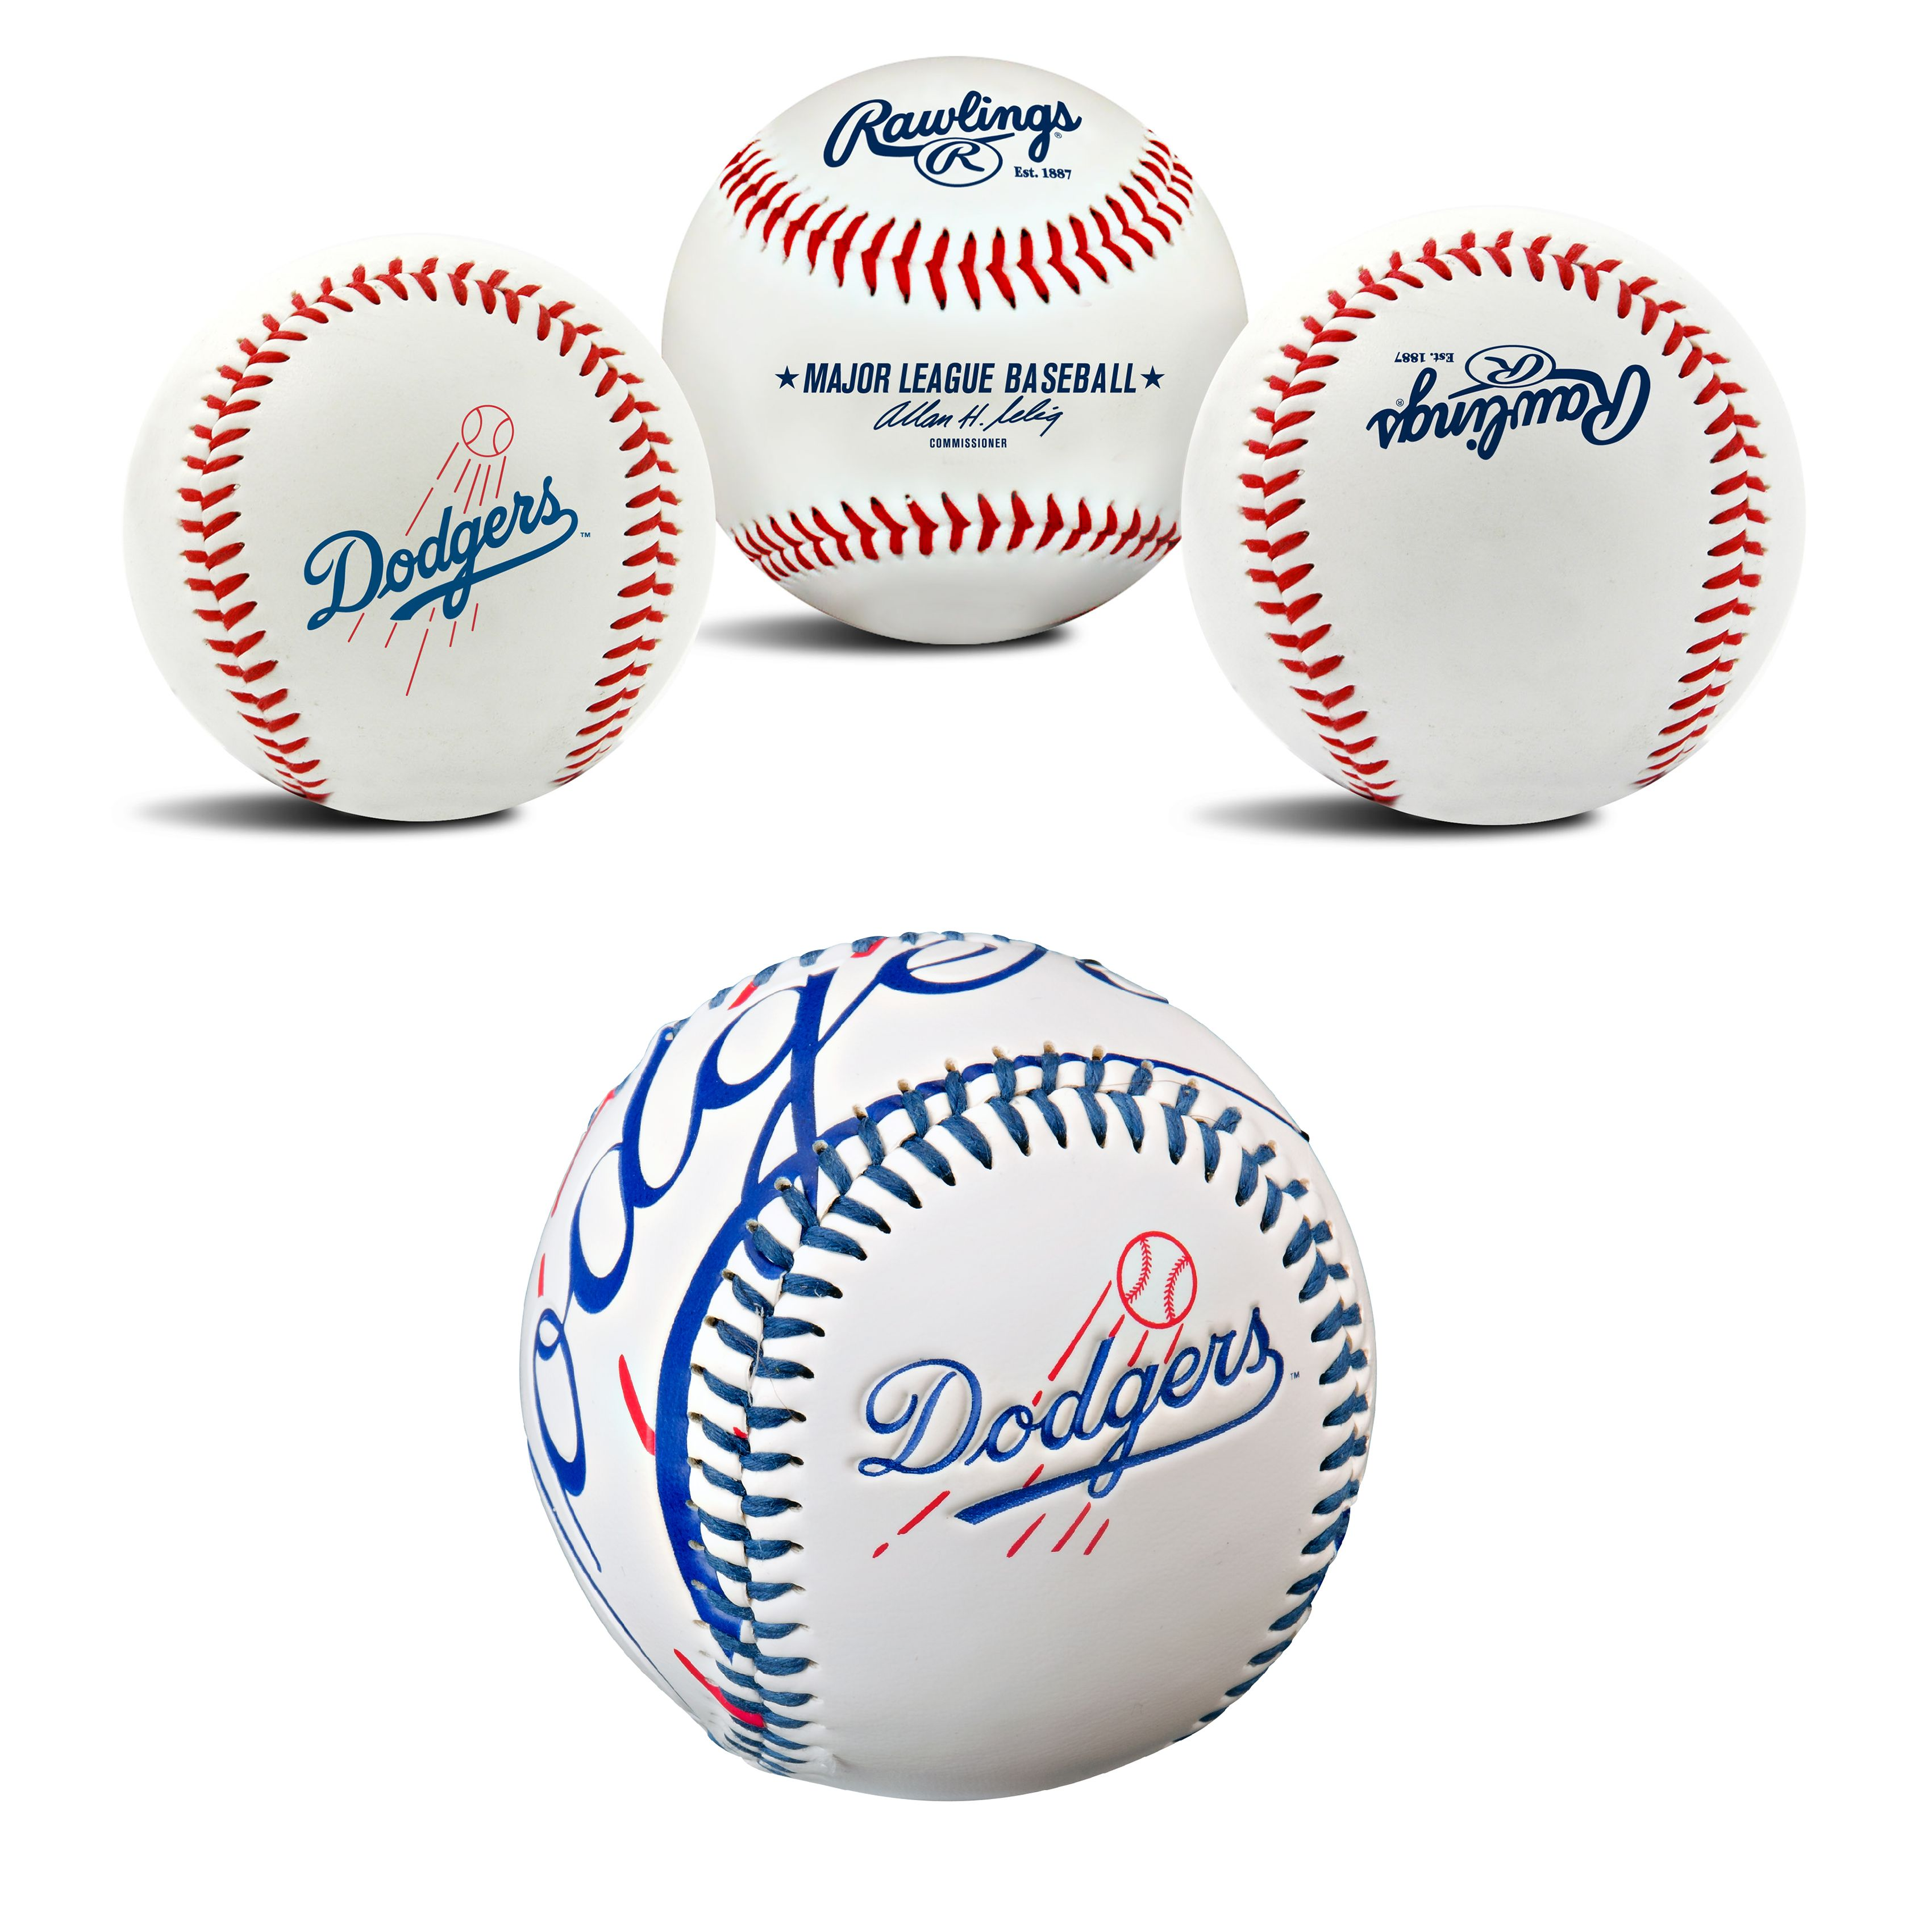 Los Angeles Dodgers MLB Retro and Team Logo Authentic Baseballs Bundle 2 Pack